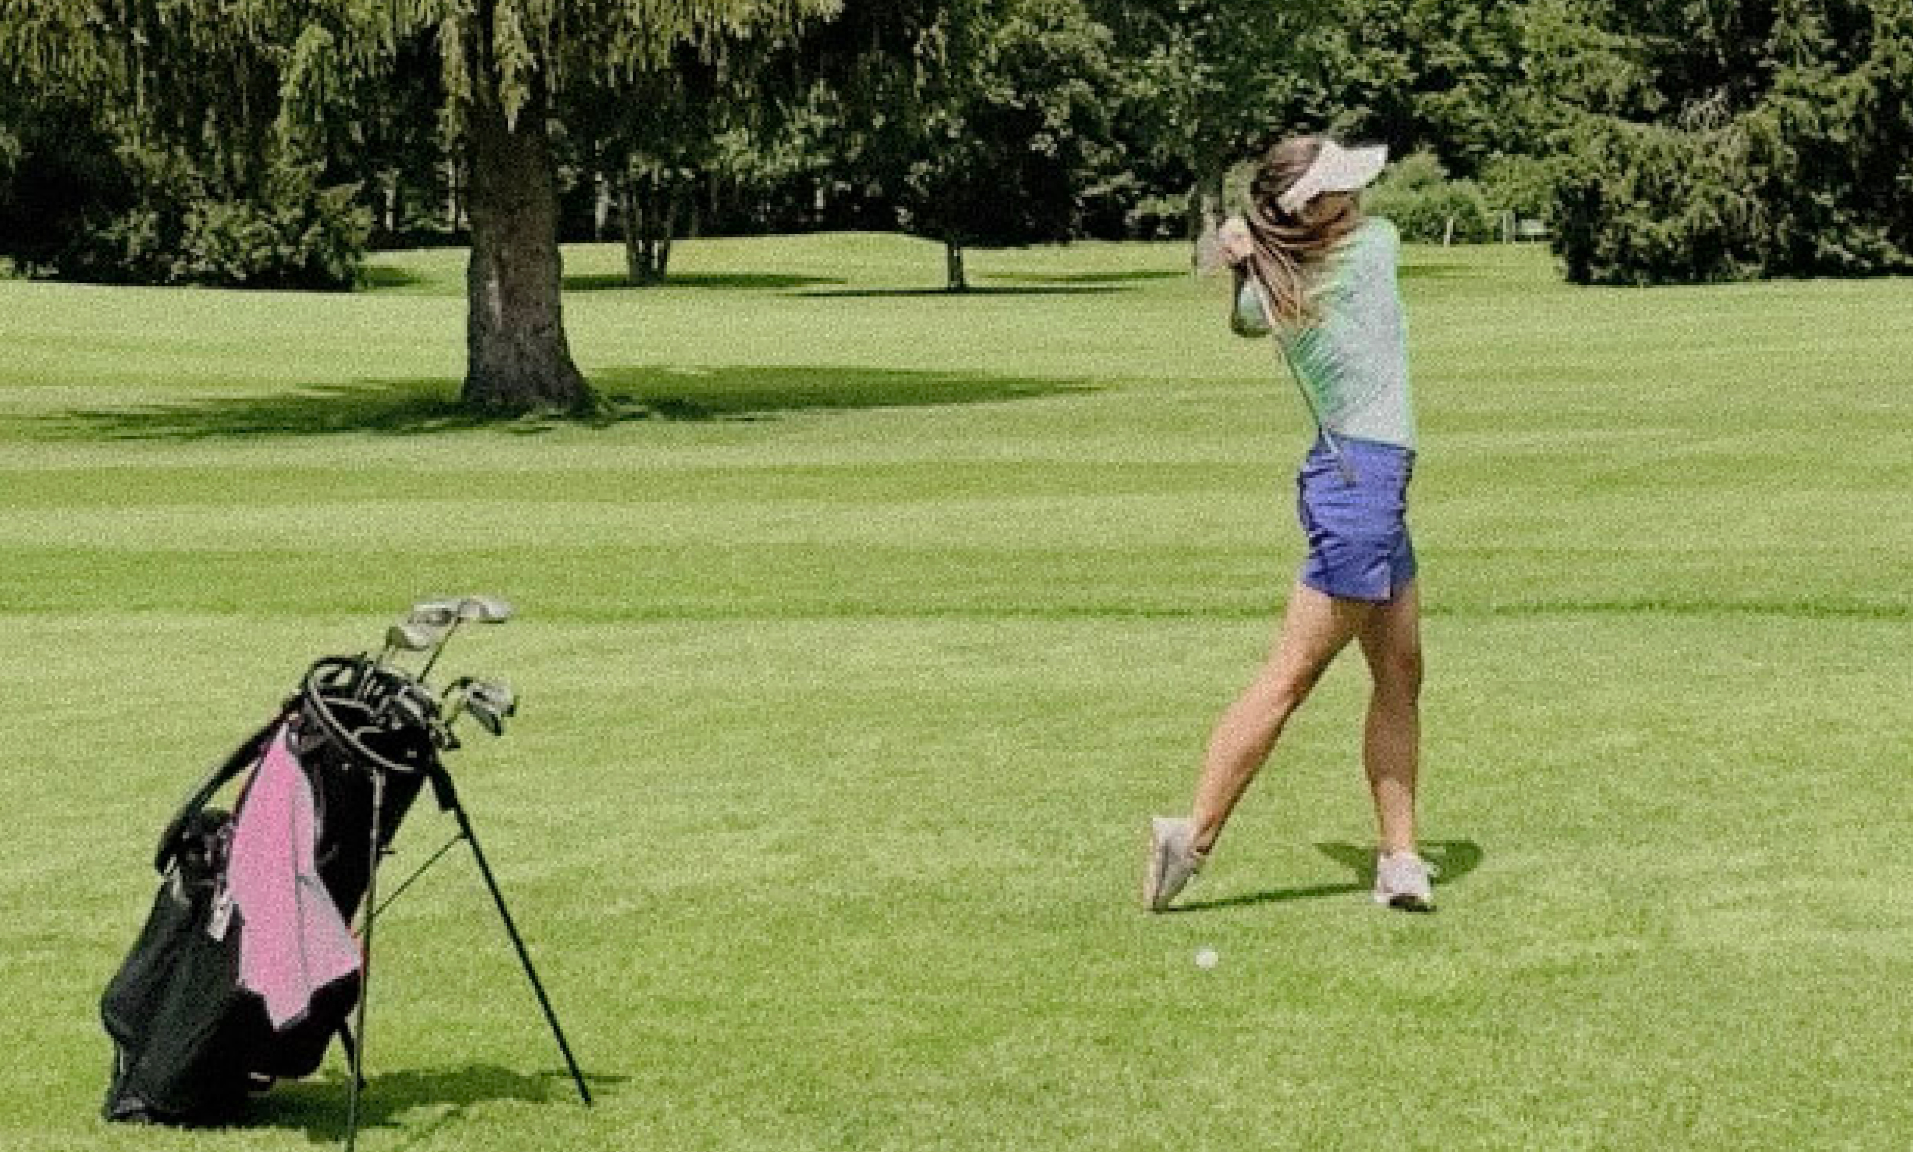 Muscle strength and golf performance, or why every golfer should do High Intensity Training (HIT)